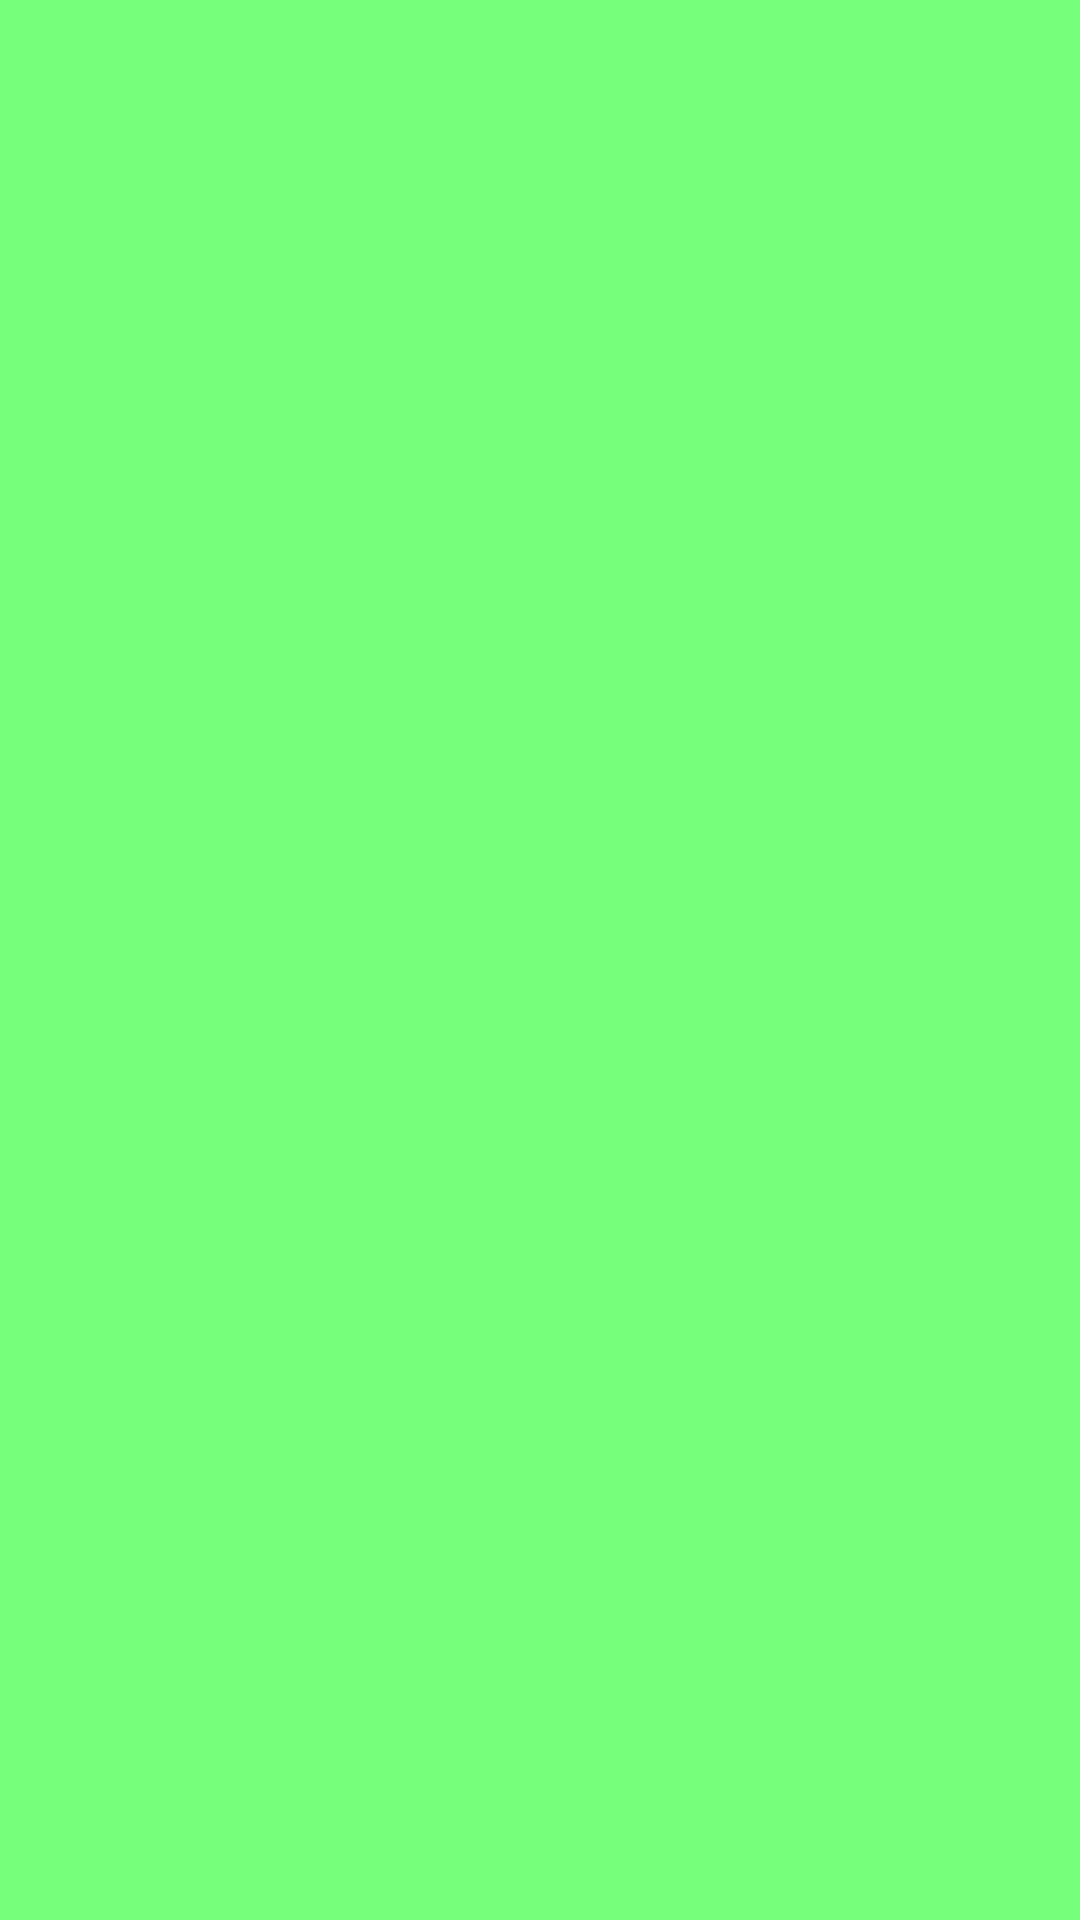 1080x1920 Screamin Green Solid Color Background